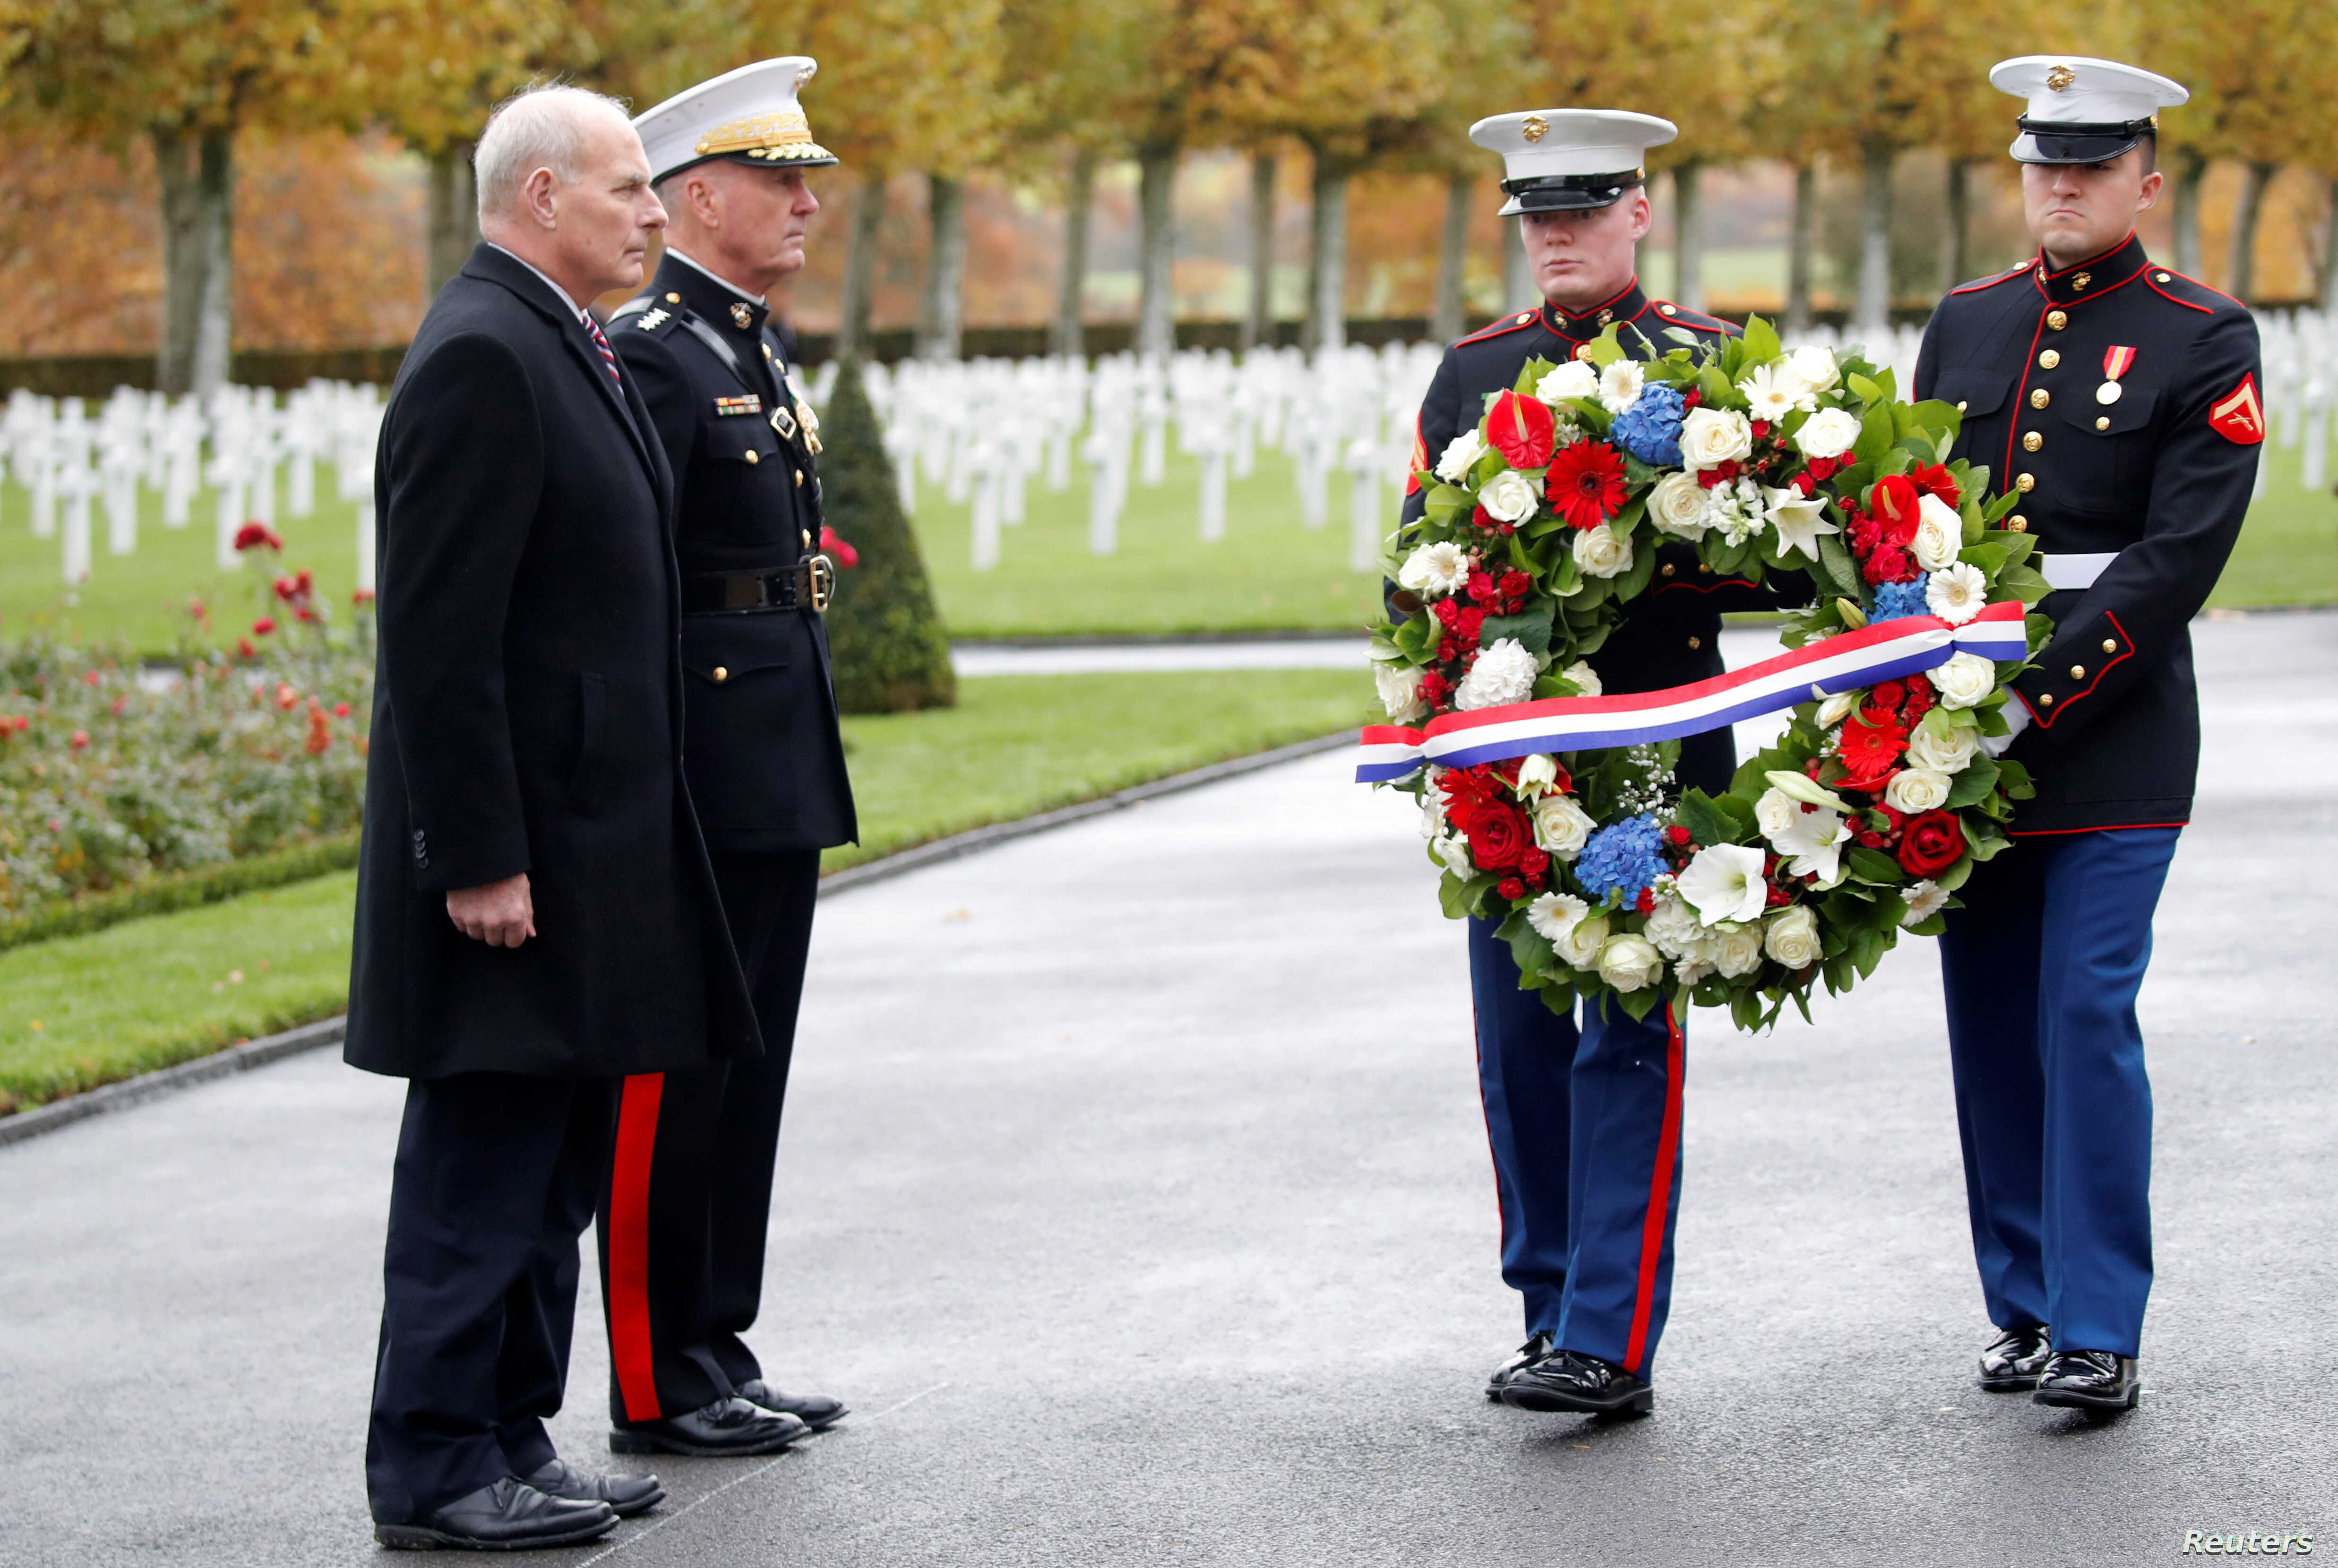 White House Chief of Staff John Kelly attends a ceremony at the Aisne-Marne American Cemetery dedicated to the U.S. soldiers killed in the Belleau Wood battle during World War One at Belleau, France, Nov. 10, 2018.